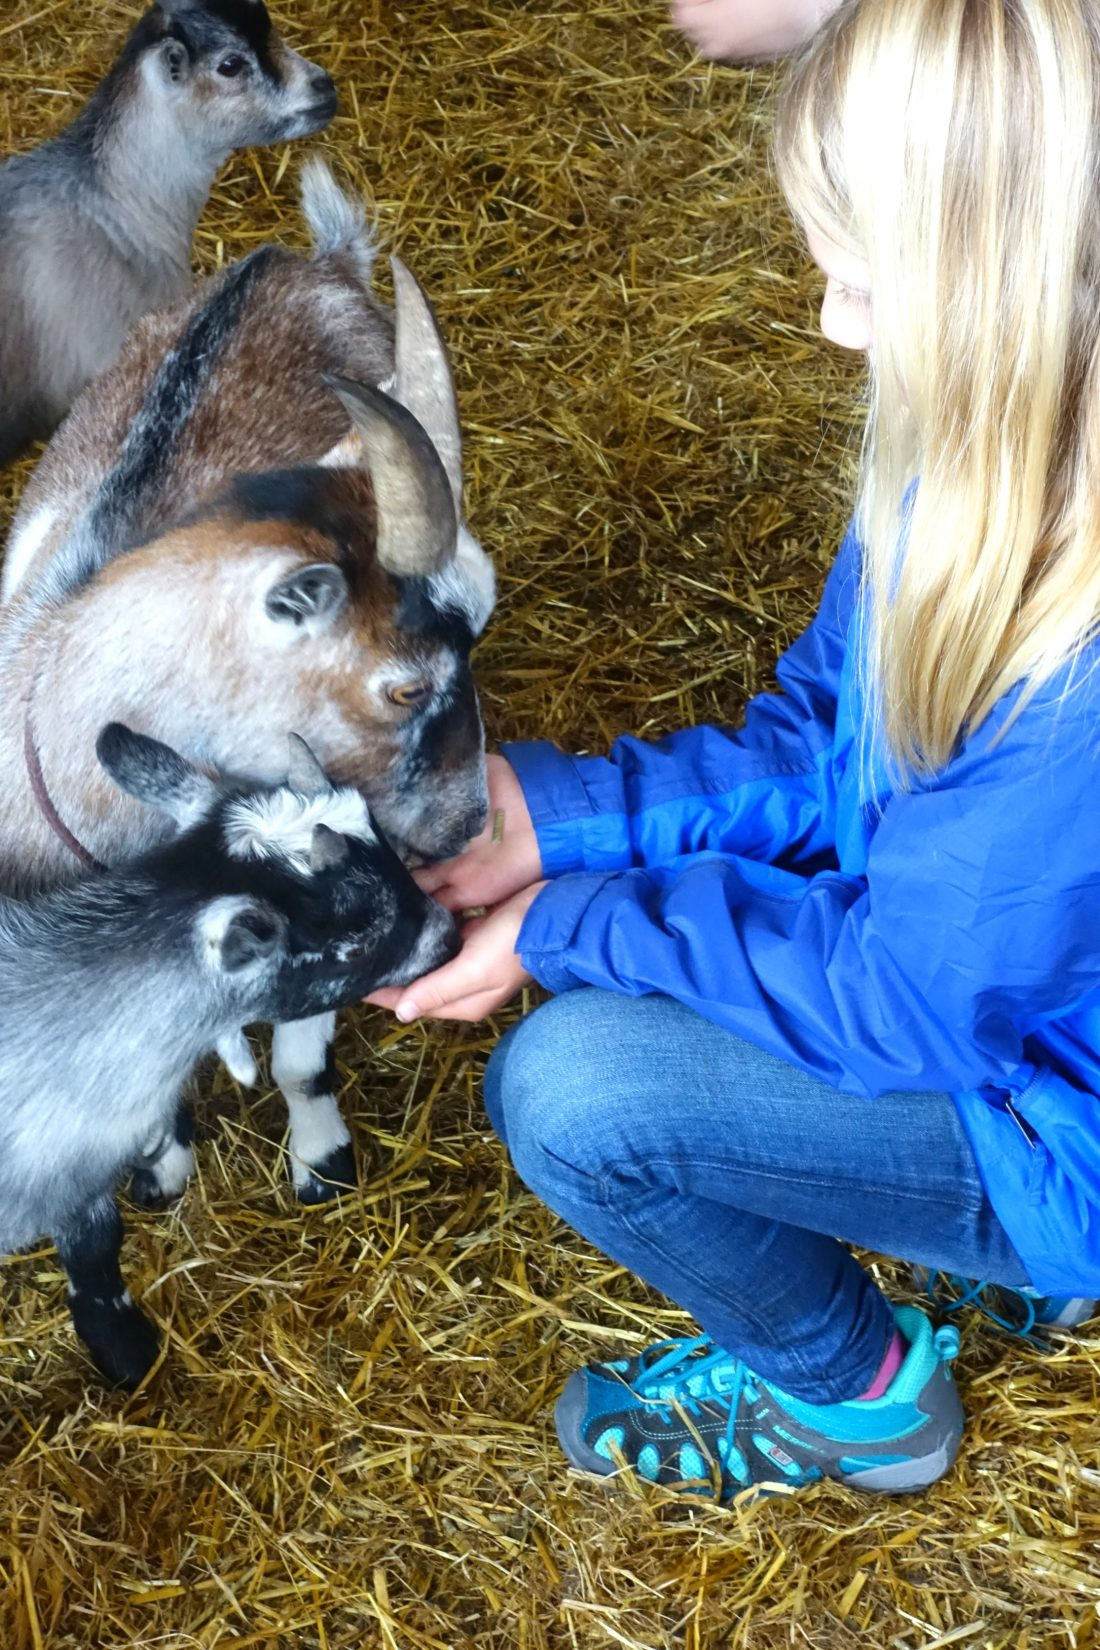 Feeding the baby goats at Blueberry Hill Farm